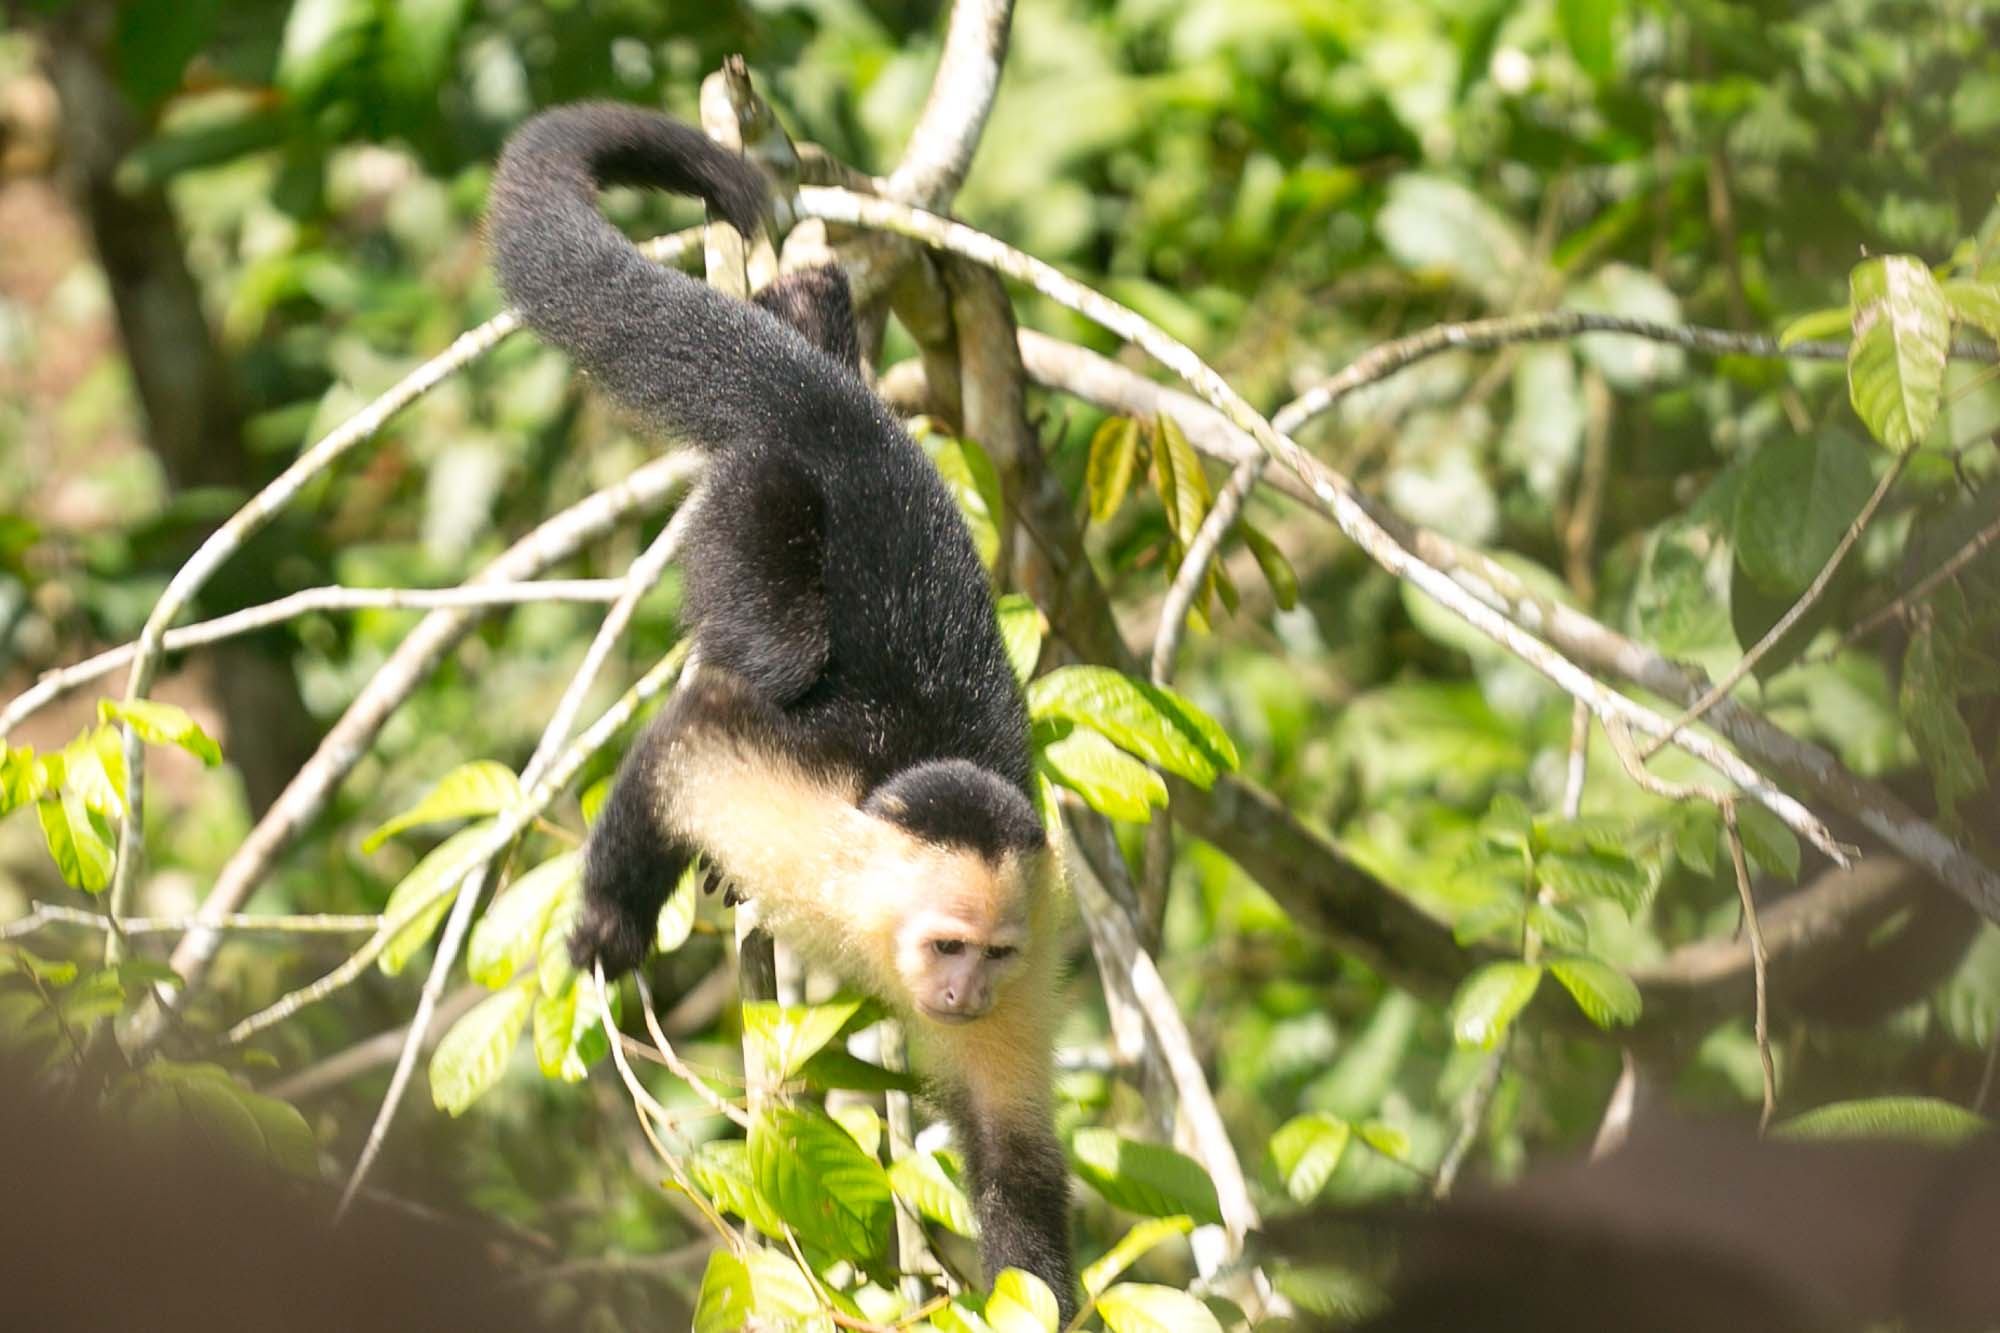 White faced capuchin approaching boat on Monkey Island, Panama